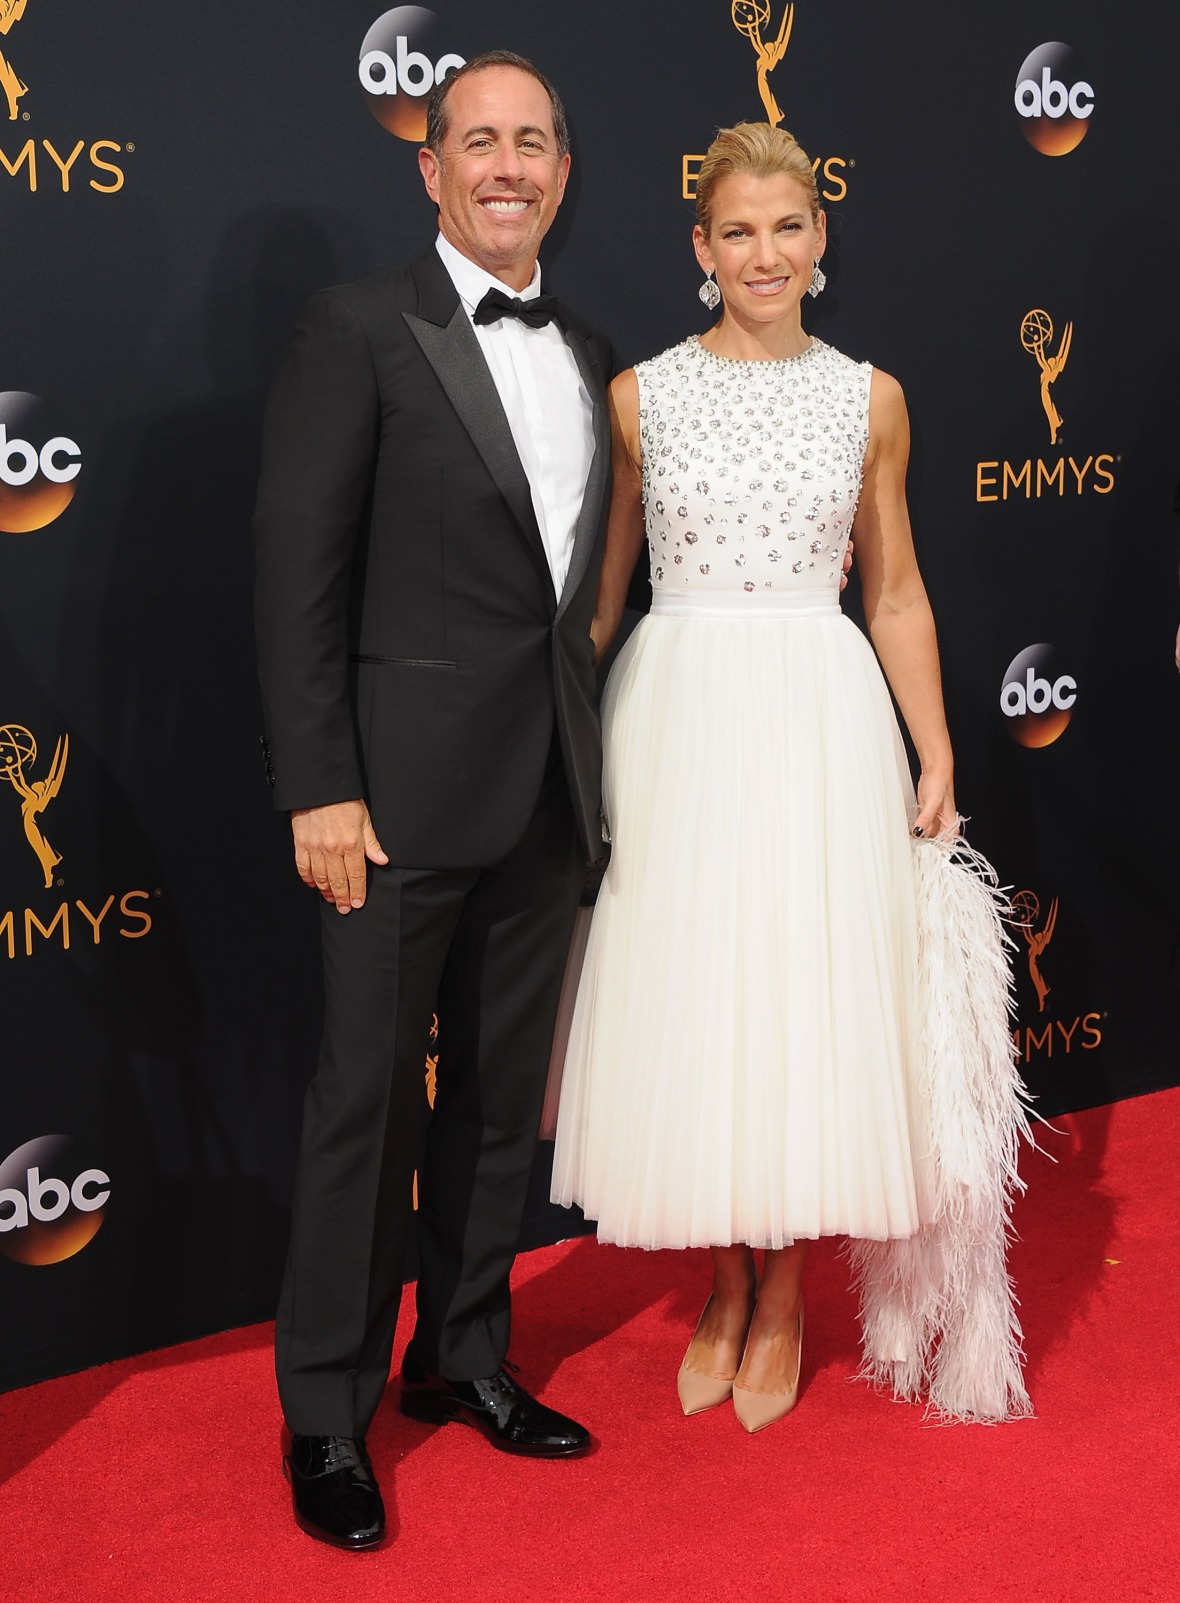 jerry seinfeld jessica seinfeld getty images